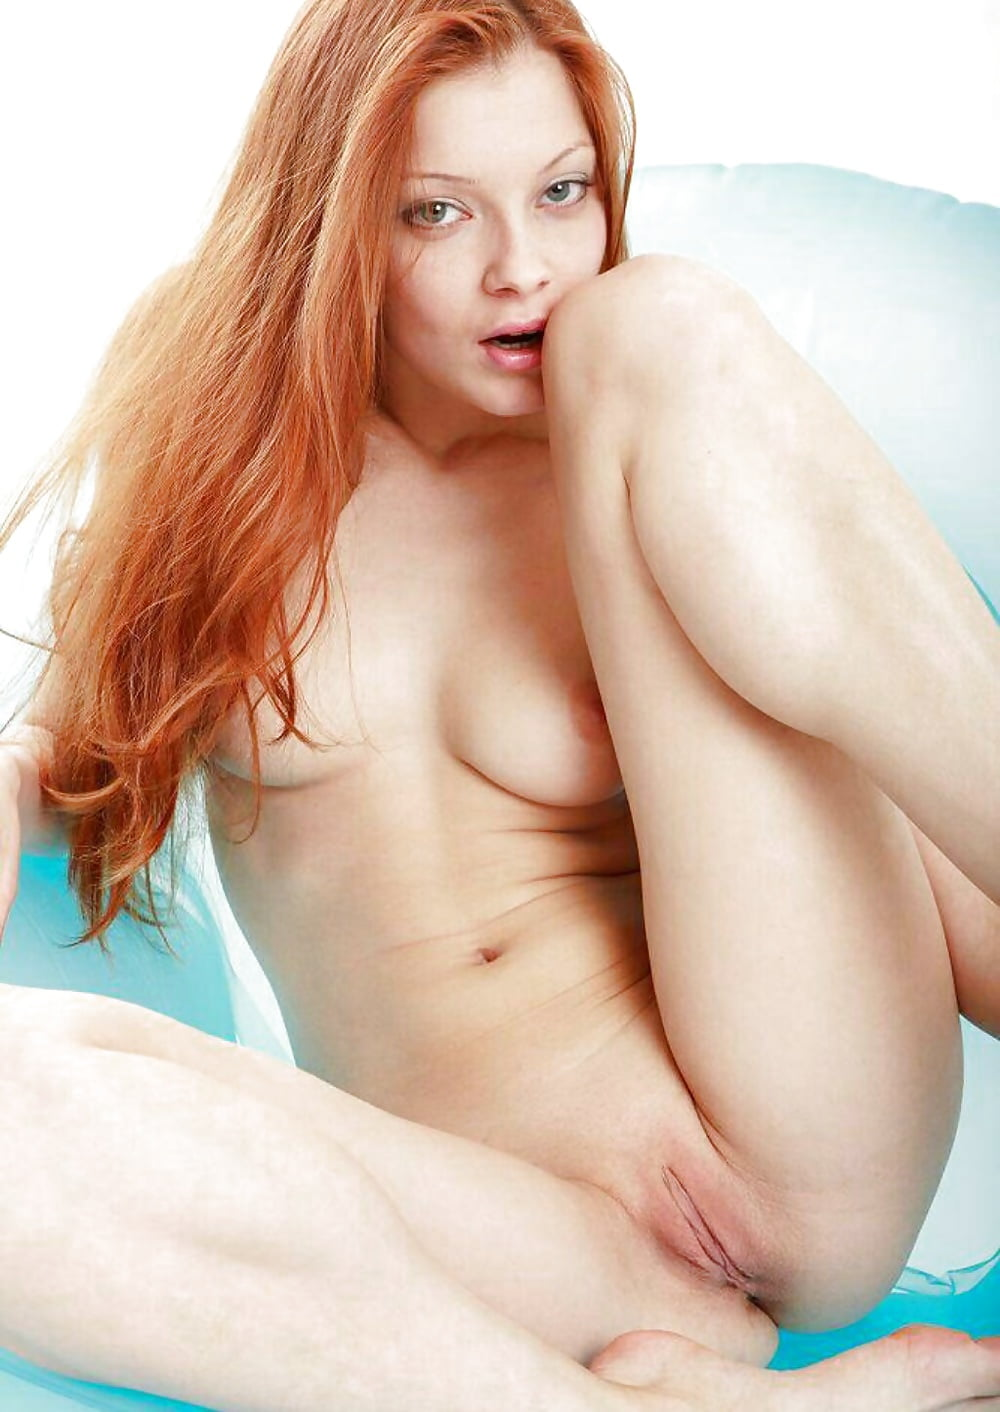 Naked red headed pussy videos women grinding tube